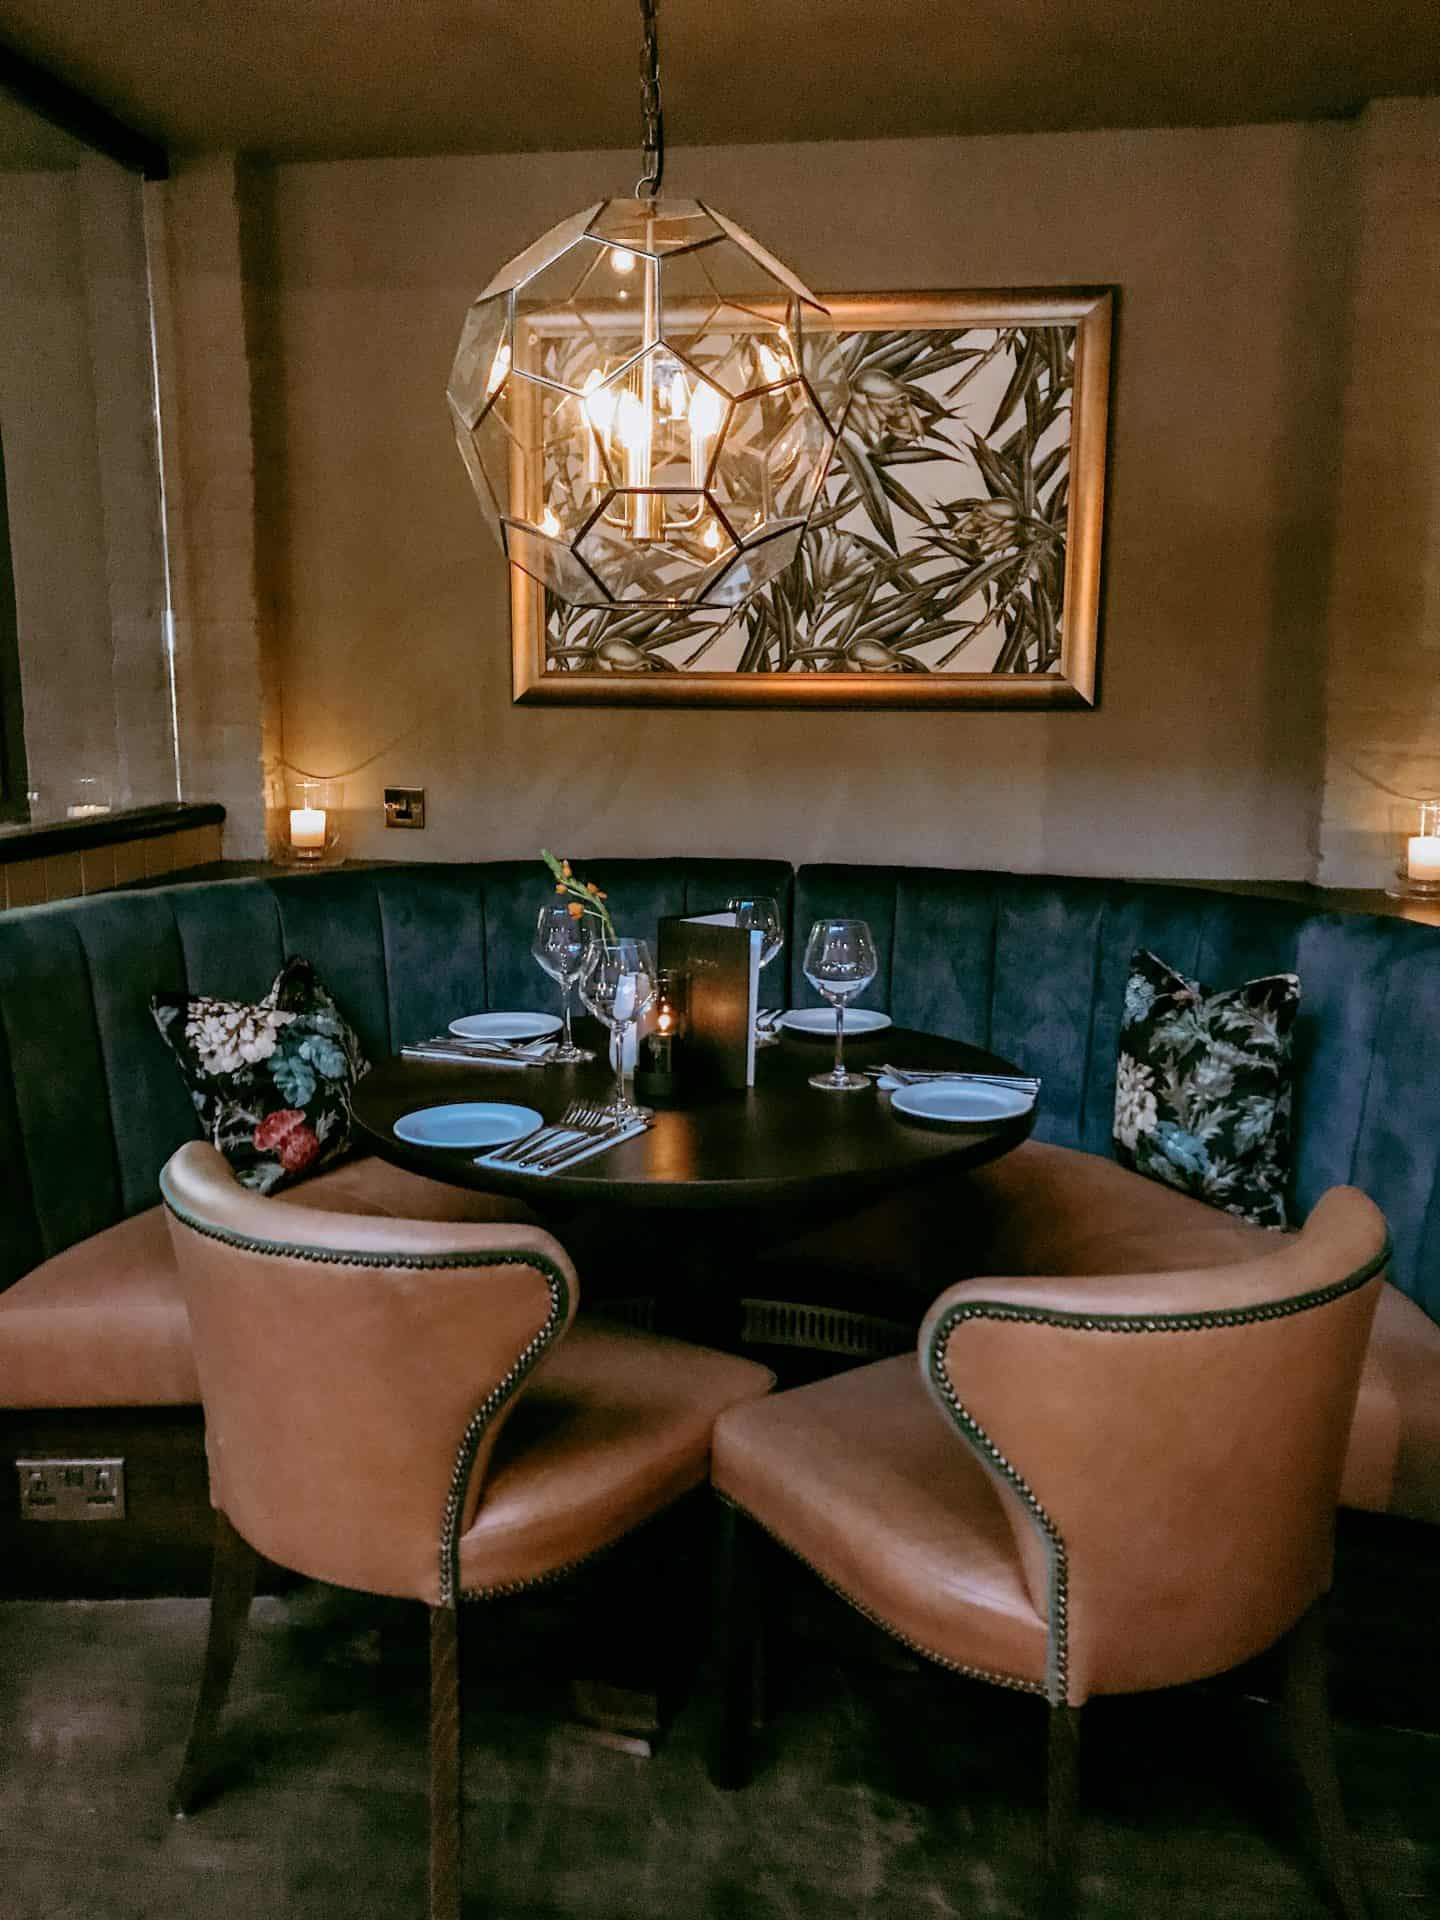 Intimate dining area at the Wavendon Arms